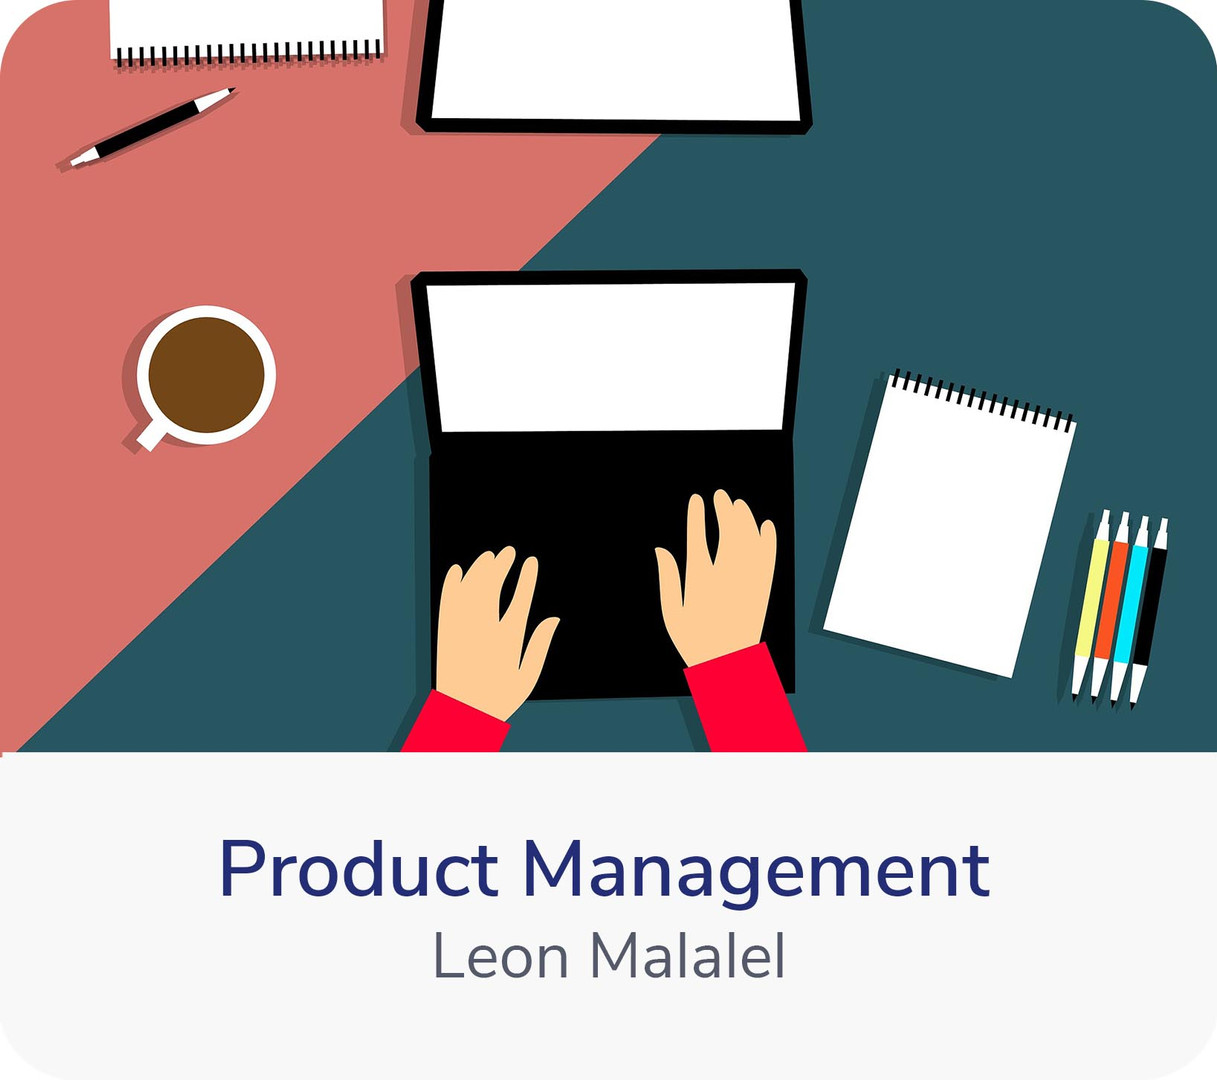 Product management is one of the most interesting and growing job sectors in the hi-tech industry. But what is Product Management, why is it important...